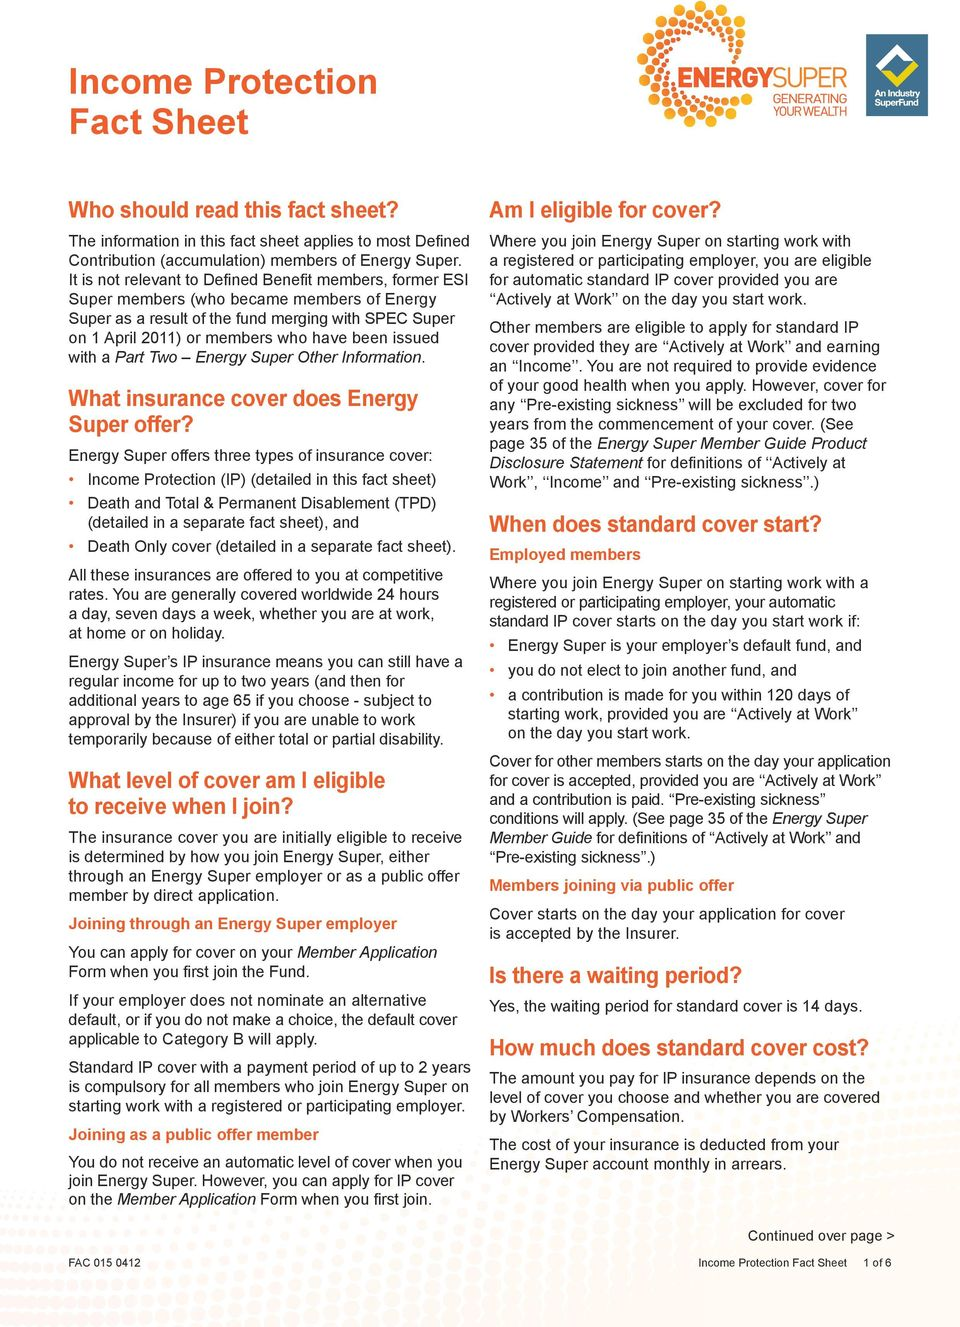 issued with a Part Two Energy Super Other Information. What insurance cover does Energy Super offer?